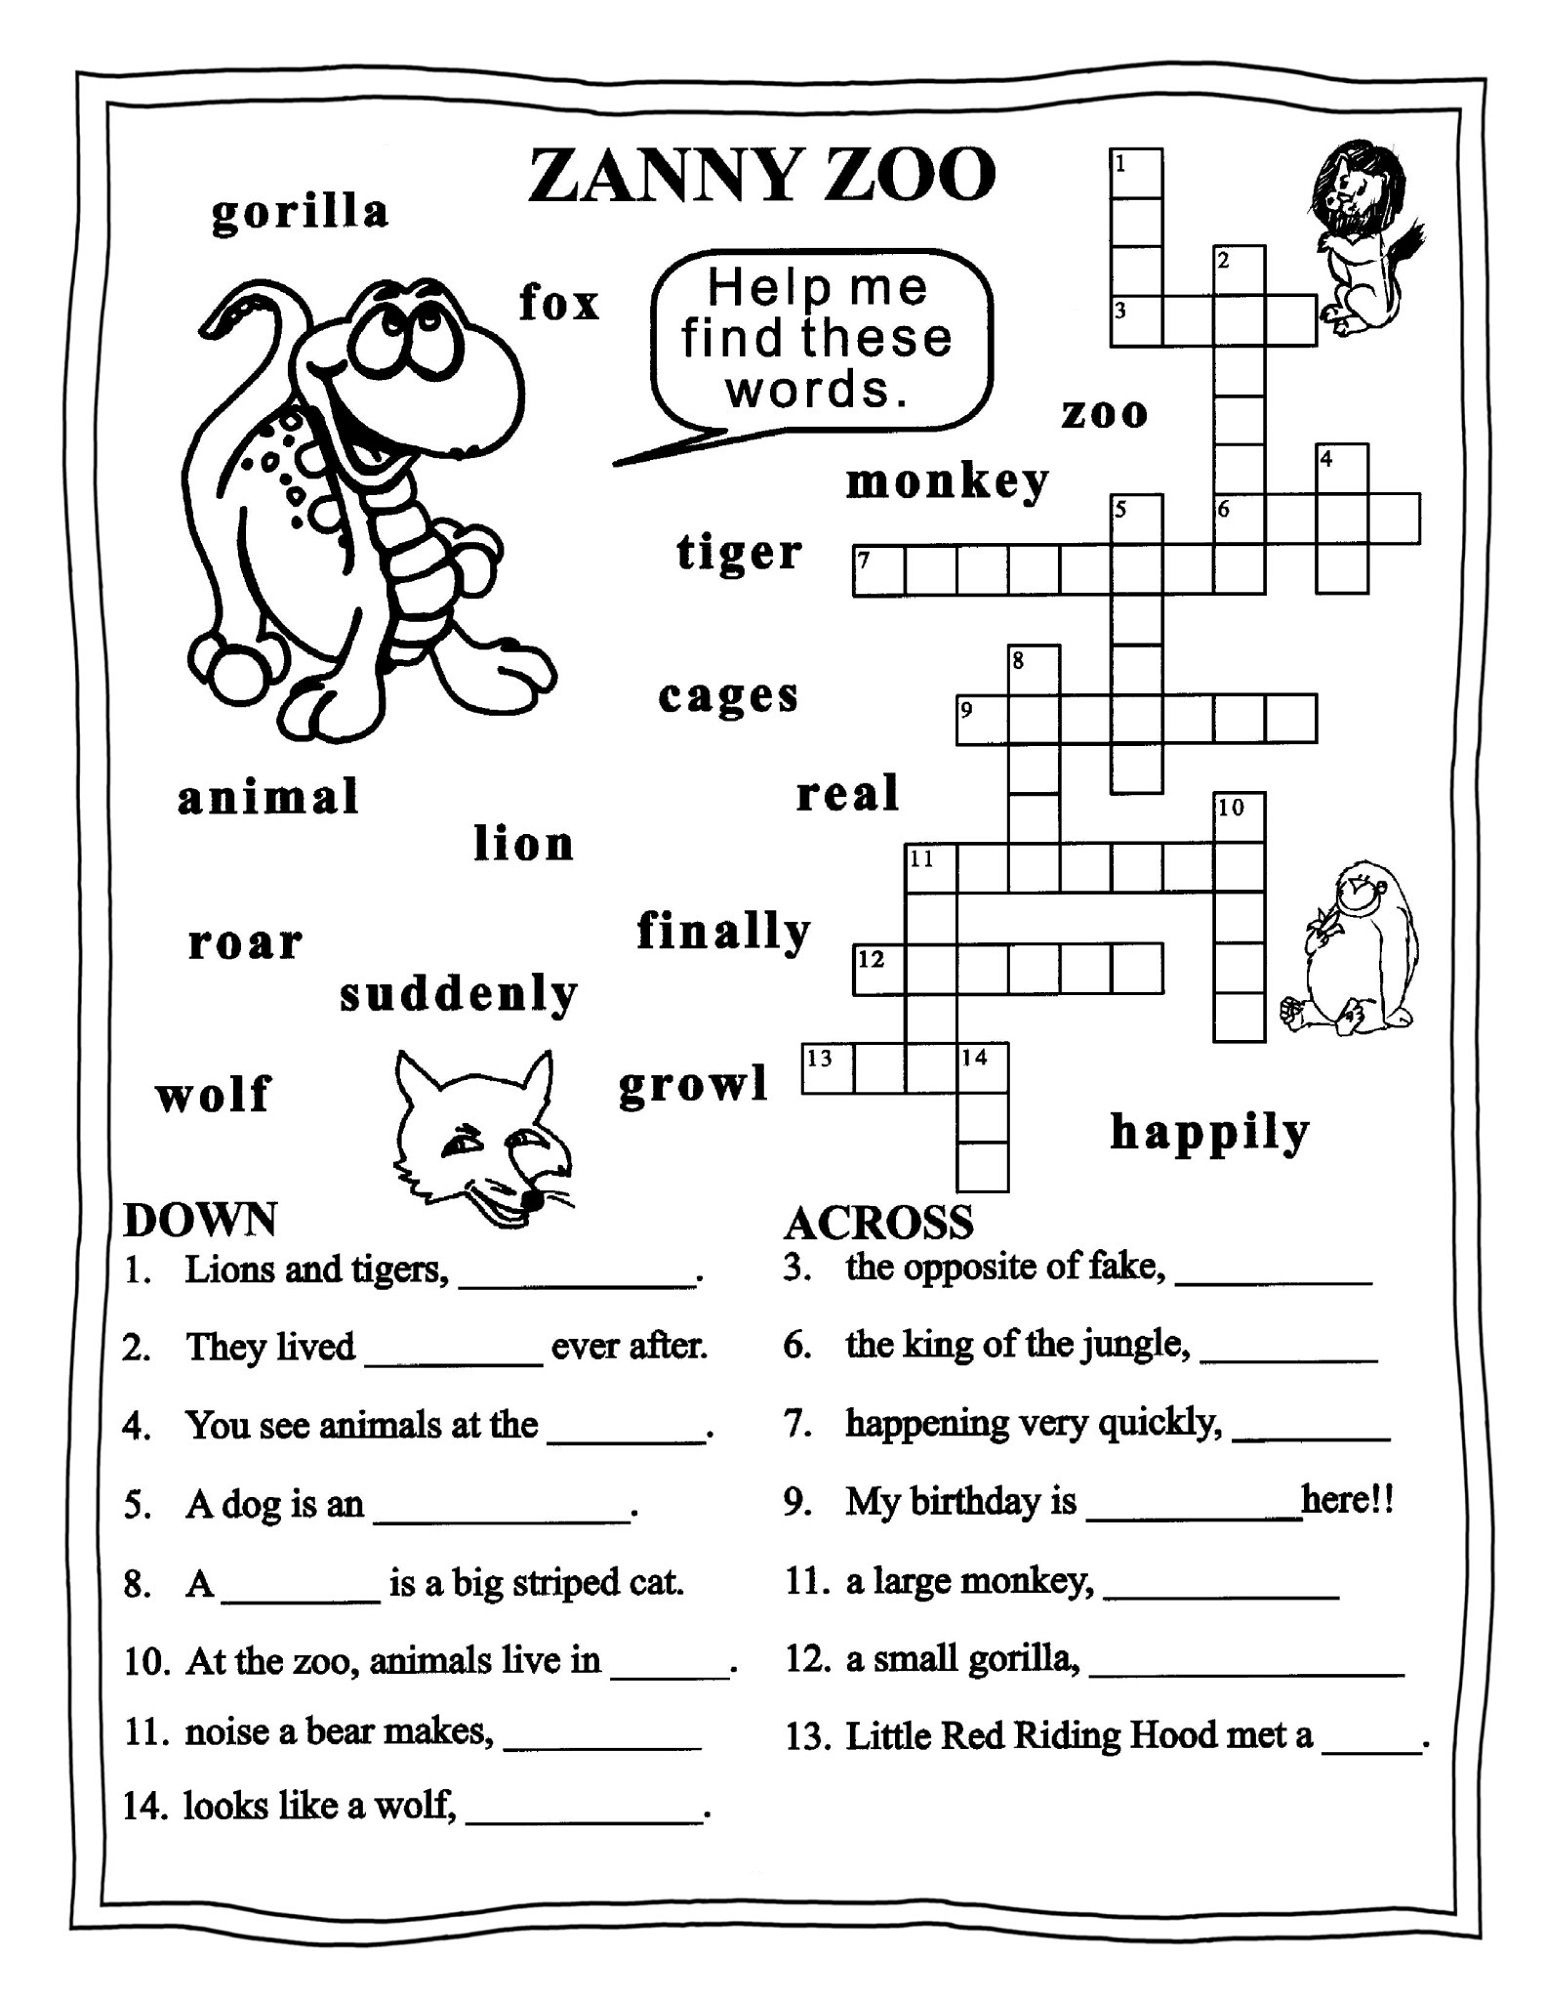 Worksheets For Grade 3 English | Learning Printable | Educative - Printable Ela Puzzles